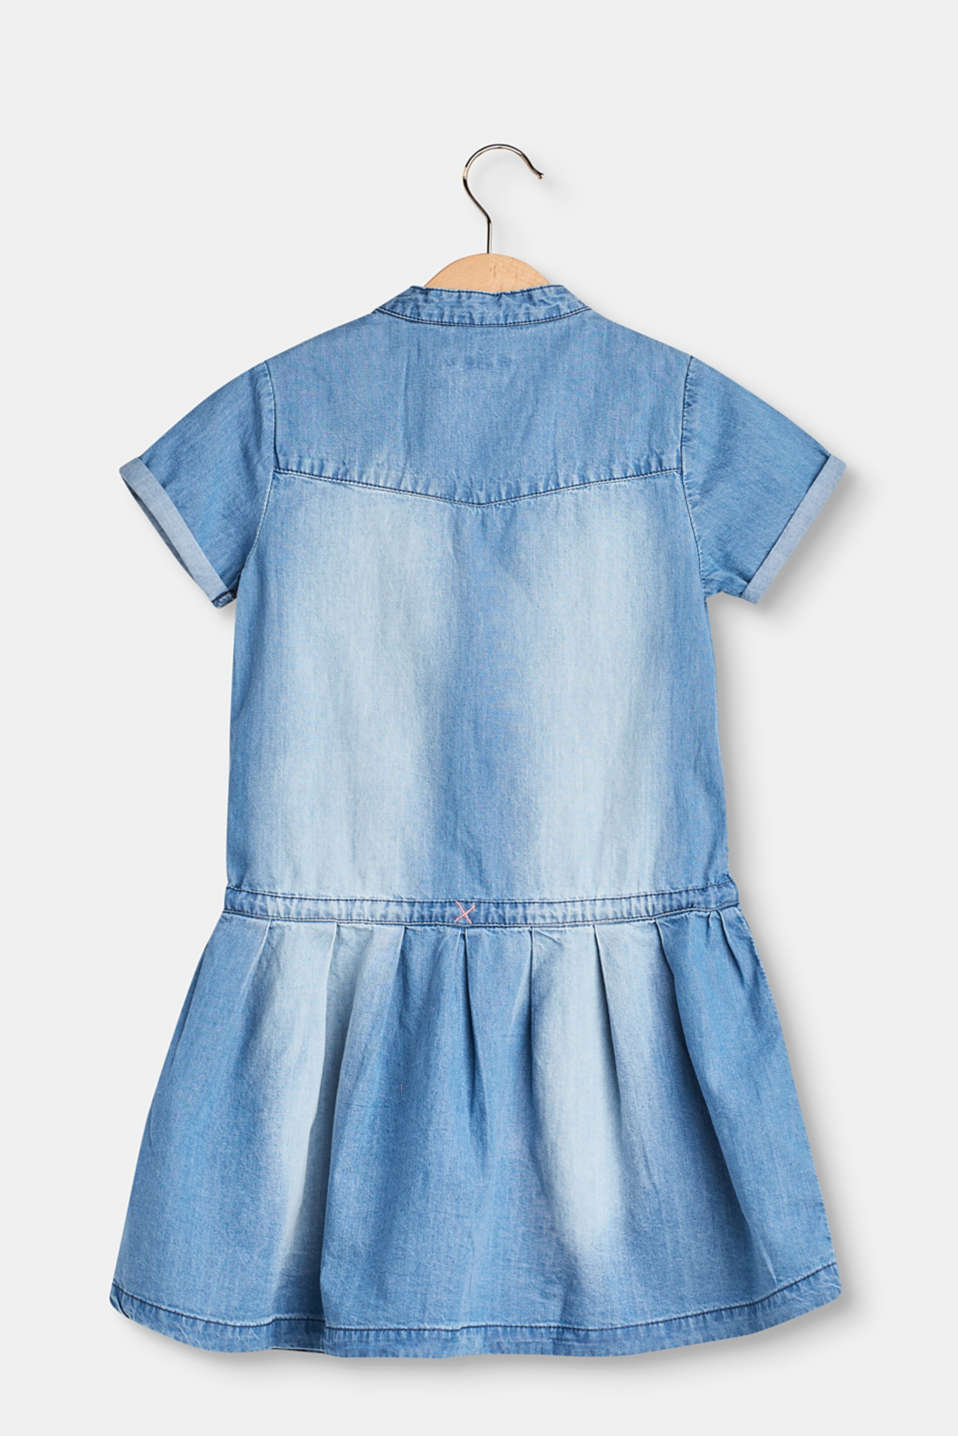 Lightweight denim dress in 100% cotton